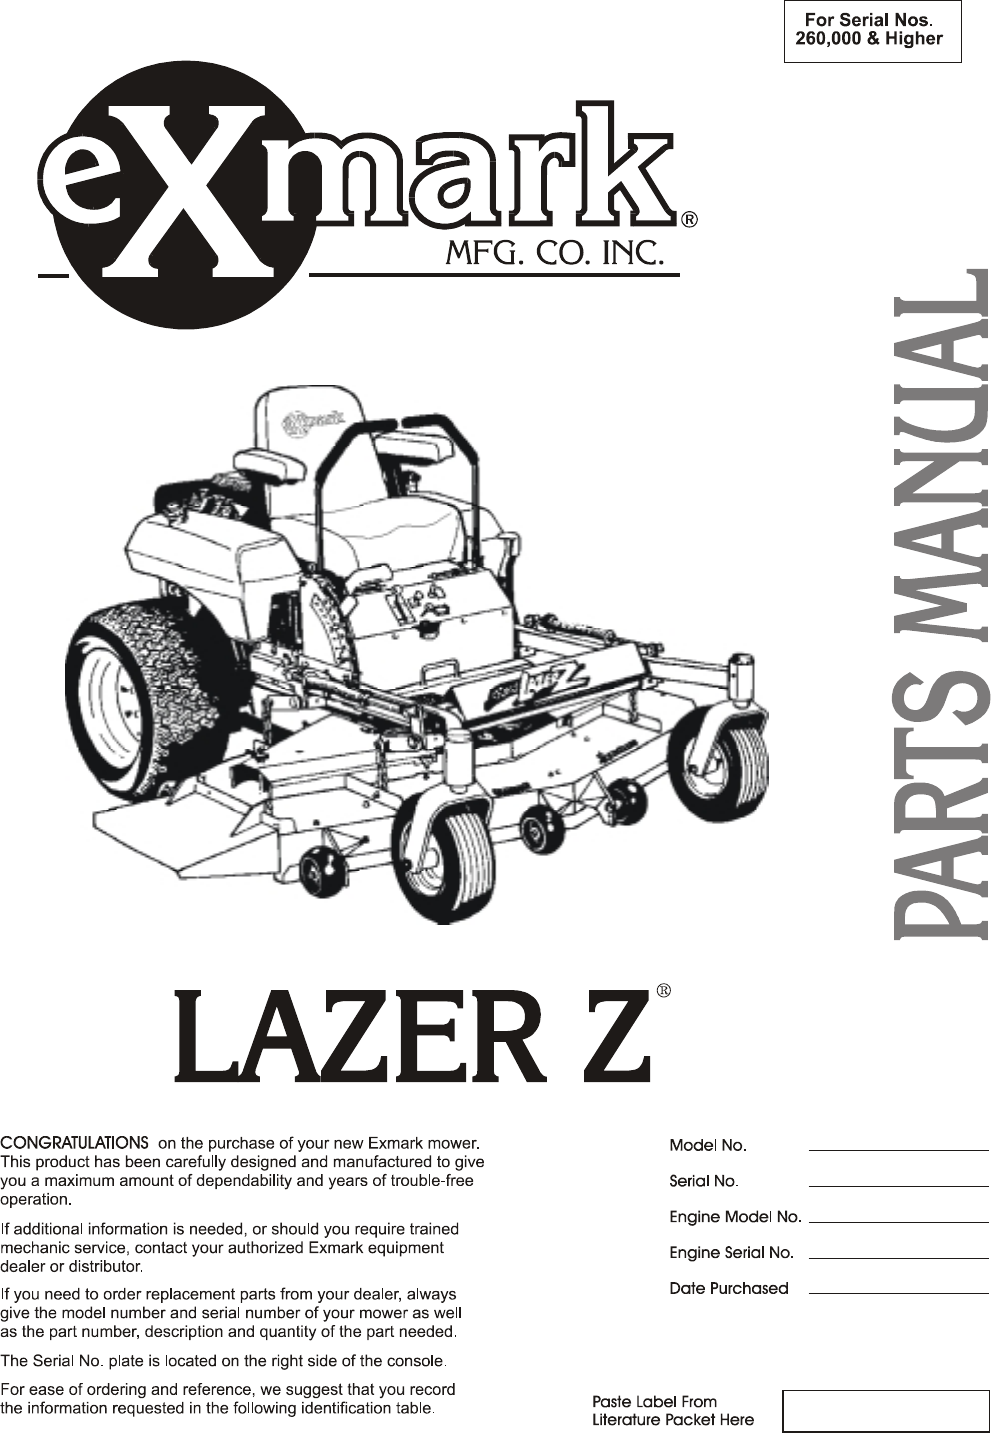 exmark engines owners manual free owners manual u2022 rh wordworksbysea com Exmark Lazer Z Exmark Lazer Z Mower Parts